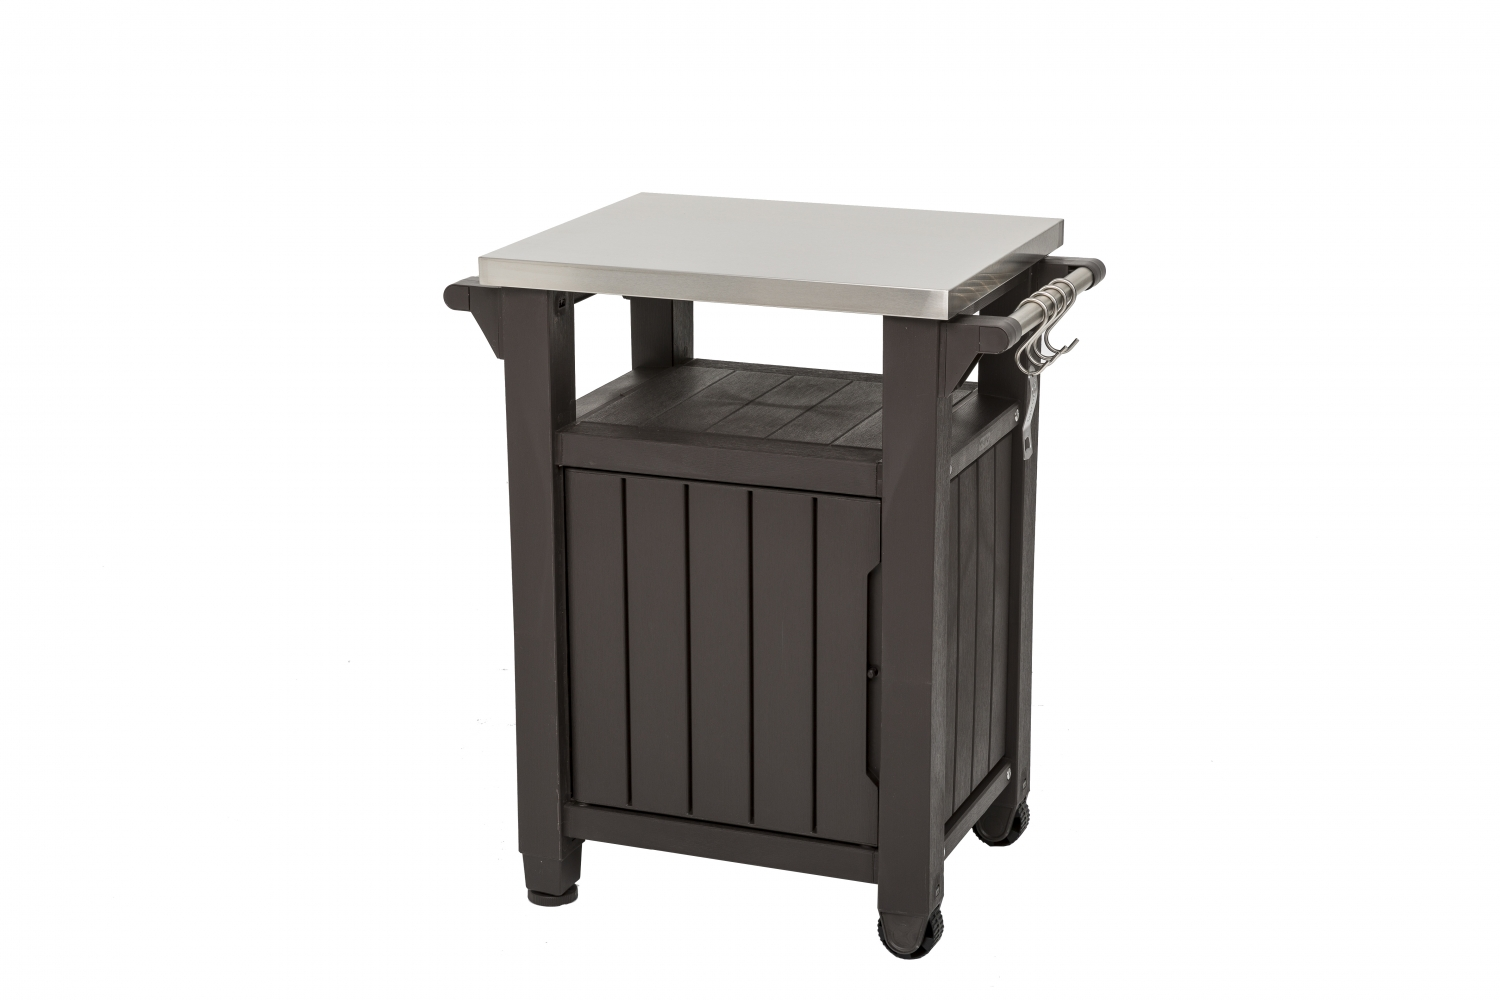 Bbq Table Bench With Stainless Steel Top Patio Life